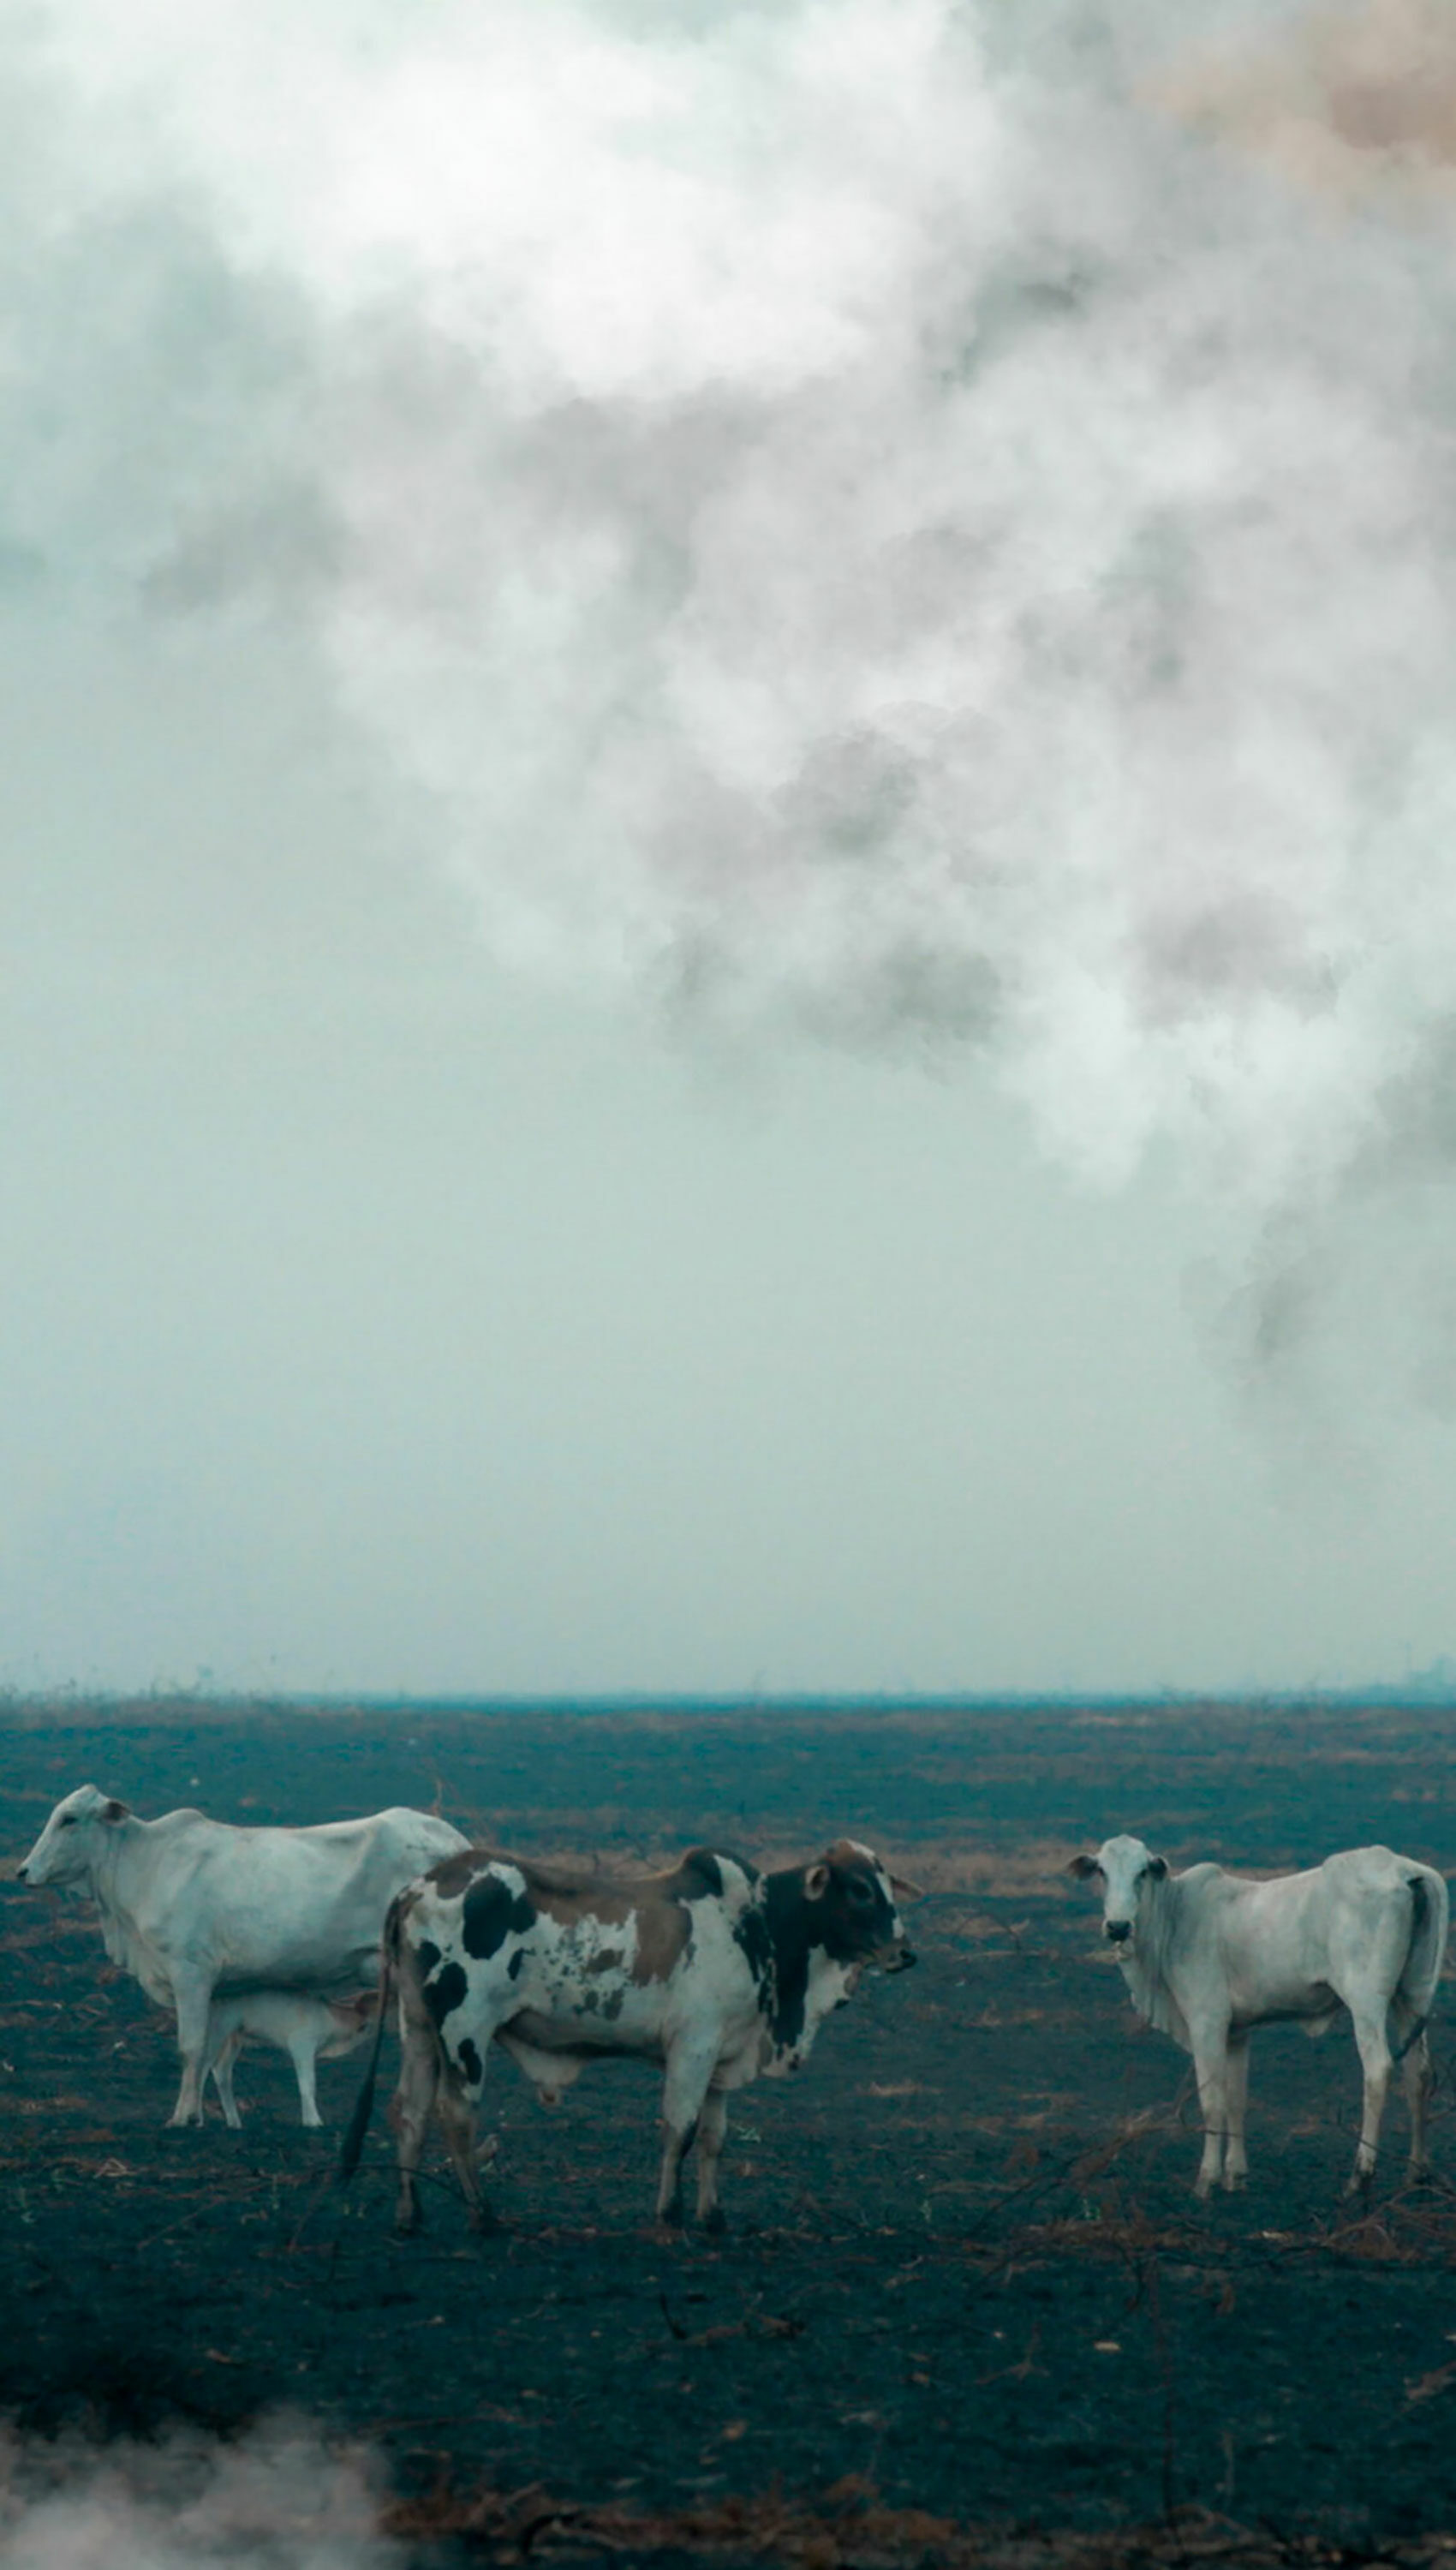 cows on burning deforested land in Brazil